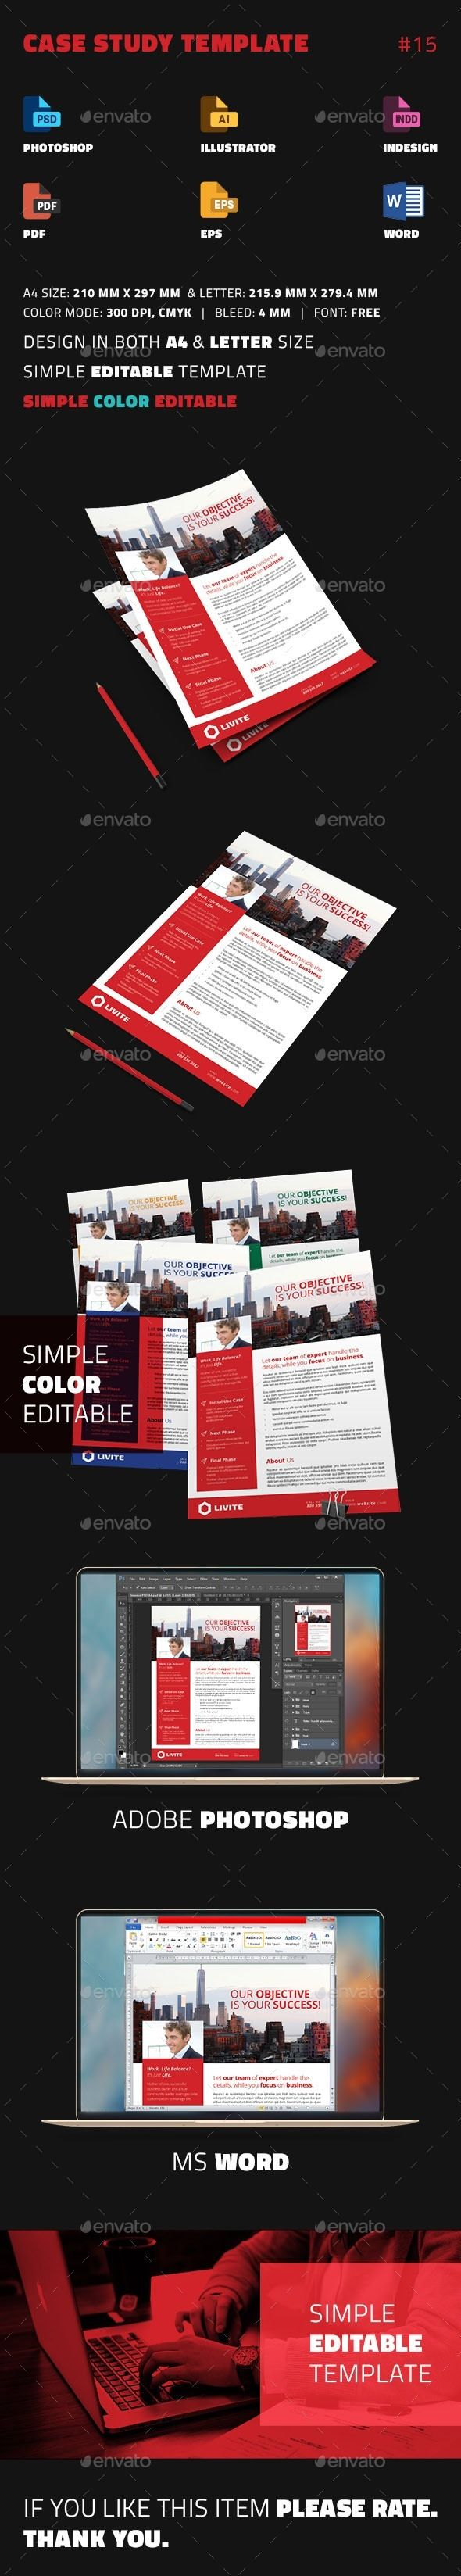 Case Study Template - Newsletters Print Templates Download here : https://graphicriver.net/item/case-study-template/17023571?s_rank=4&ref=Al-fatih